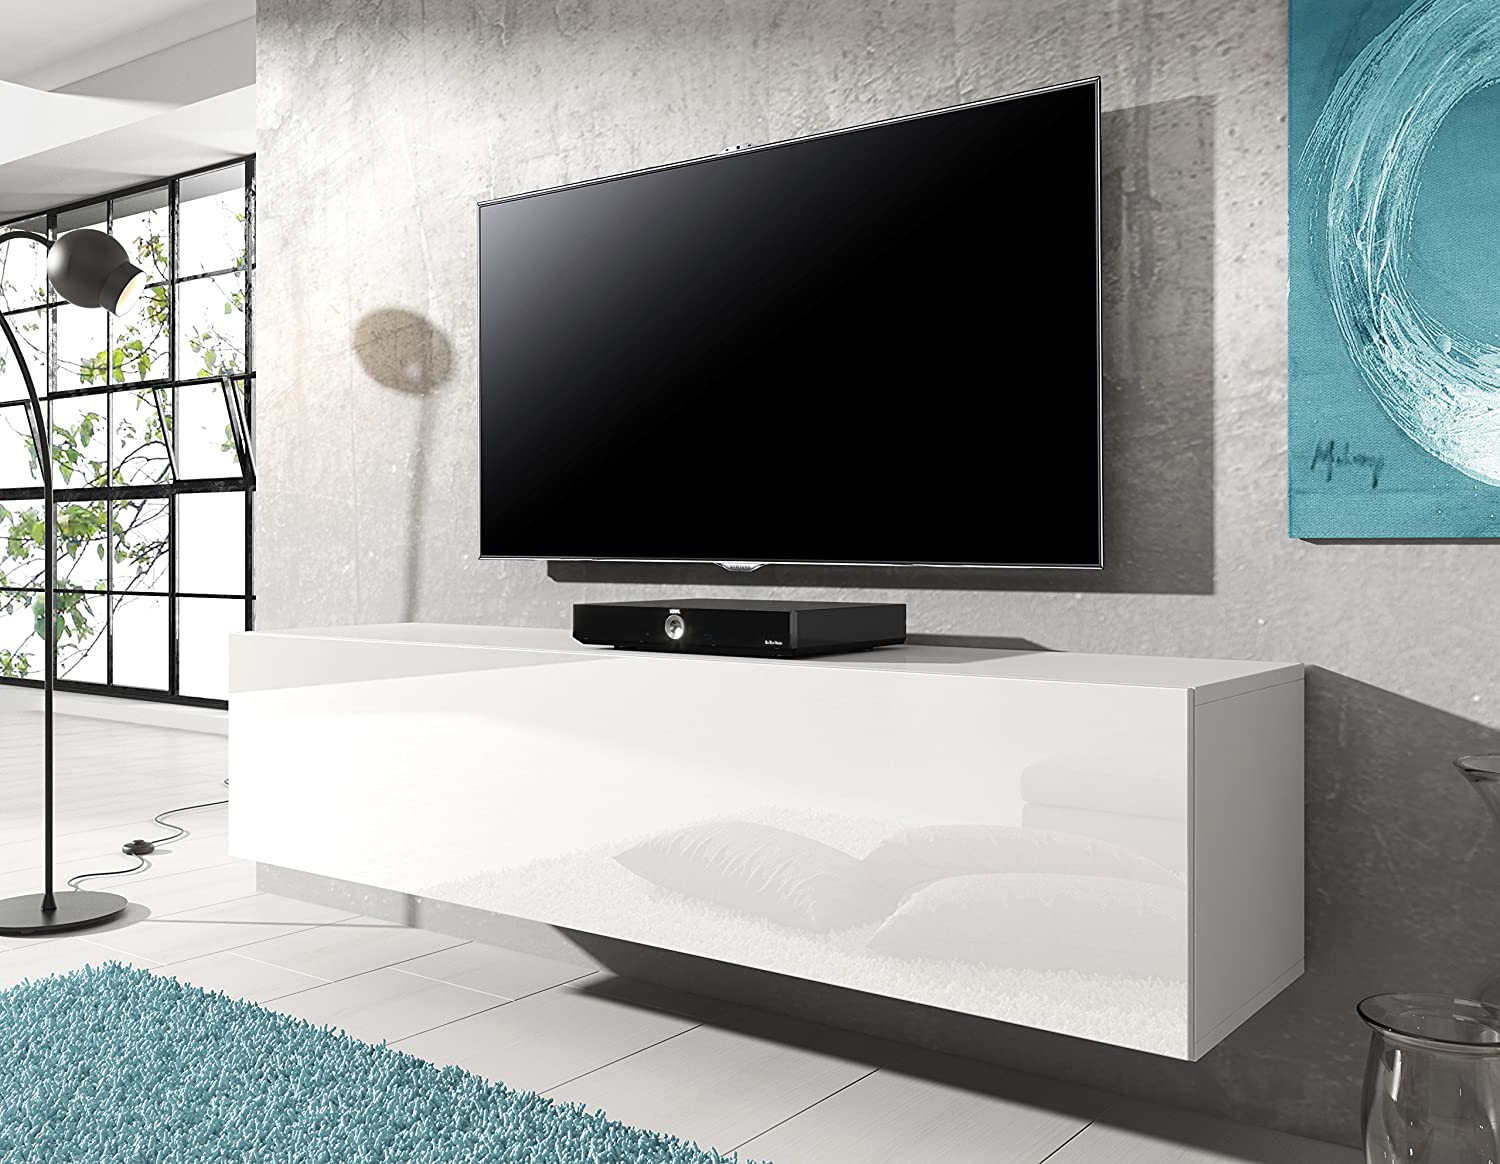 Meuble Tv Suspendu Rocco 140 Cm Blanc Mat Frontal Avec Brillant  # Meuble Tv Suspendu Design